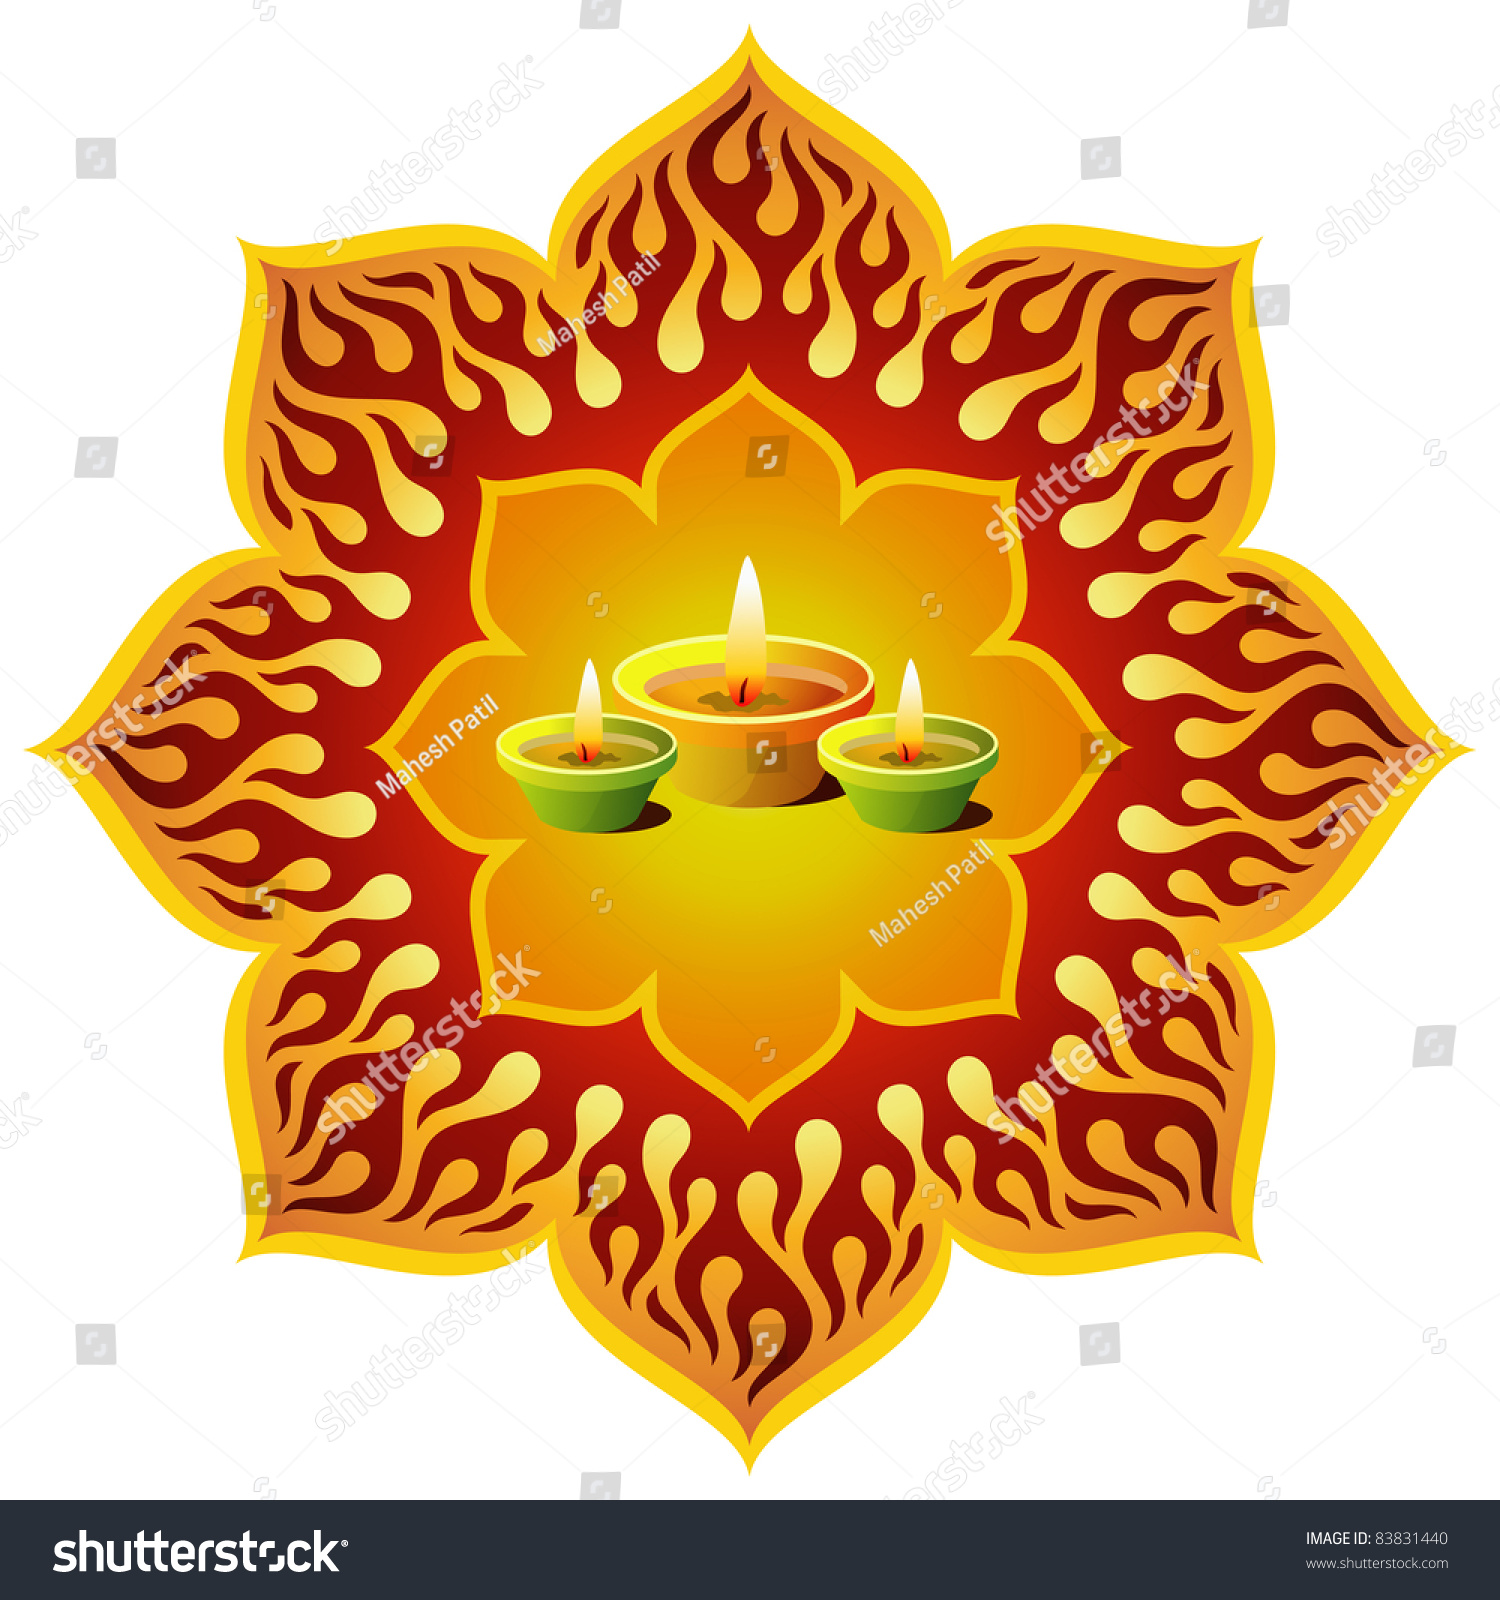 Diwali Lamp Designs Glowing Diwali Lamps Lotus Design Stock Photo 83831440